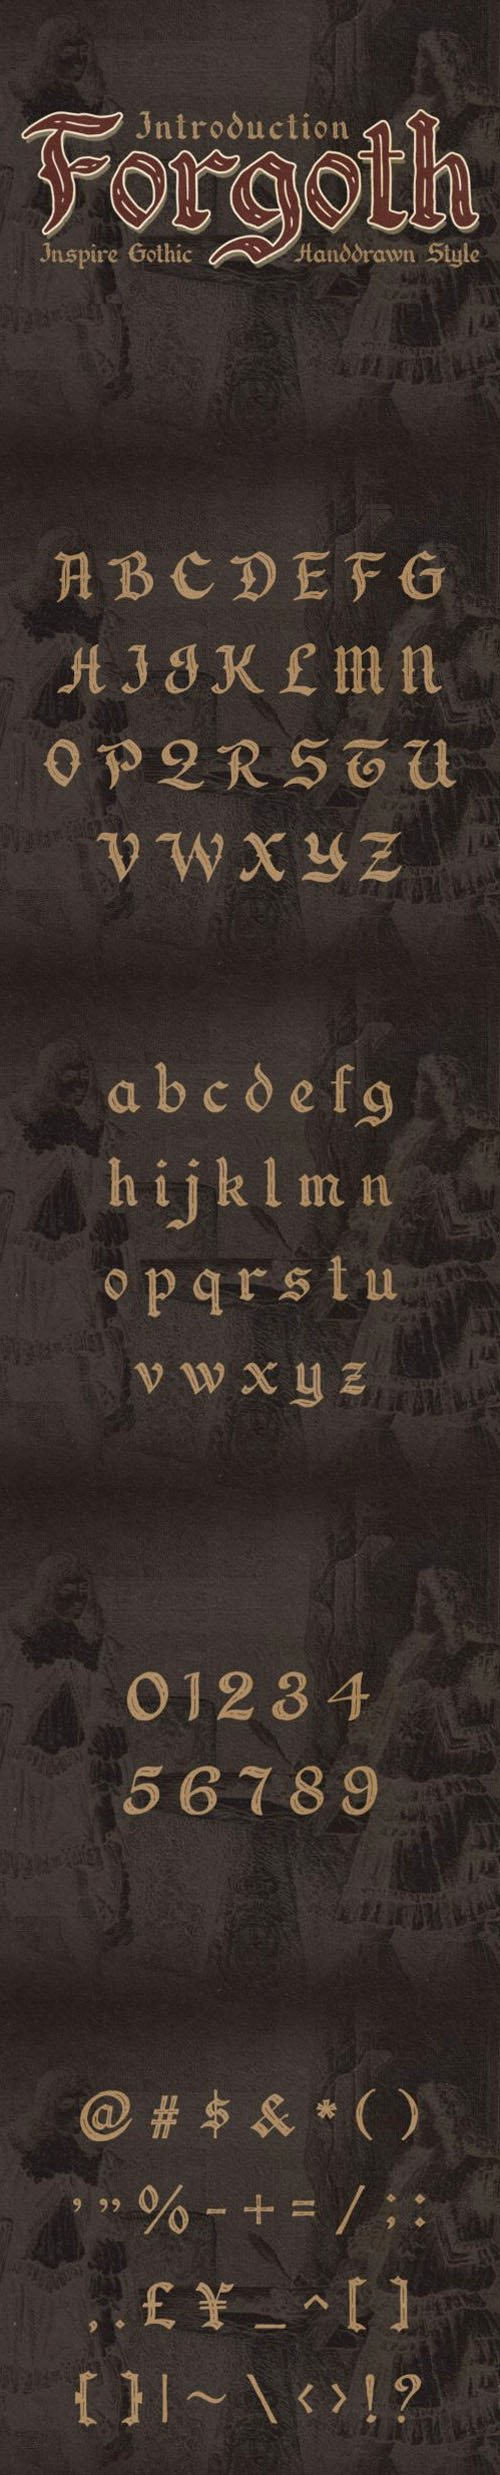 Forgoth Typeface - Inspire Gothic Hand Drawn Style